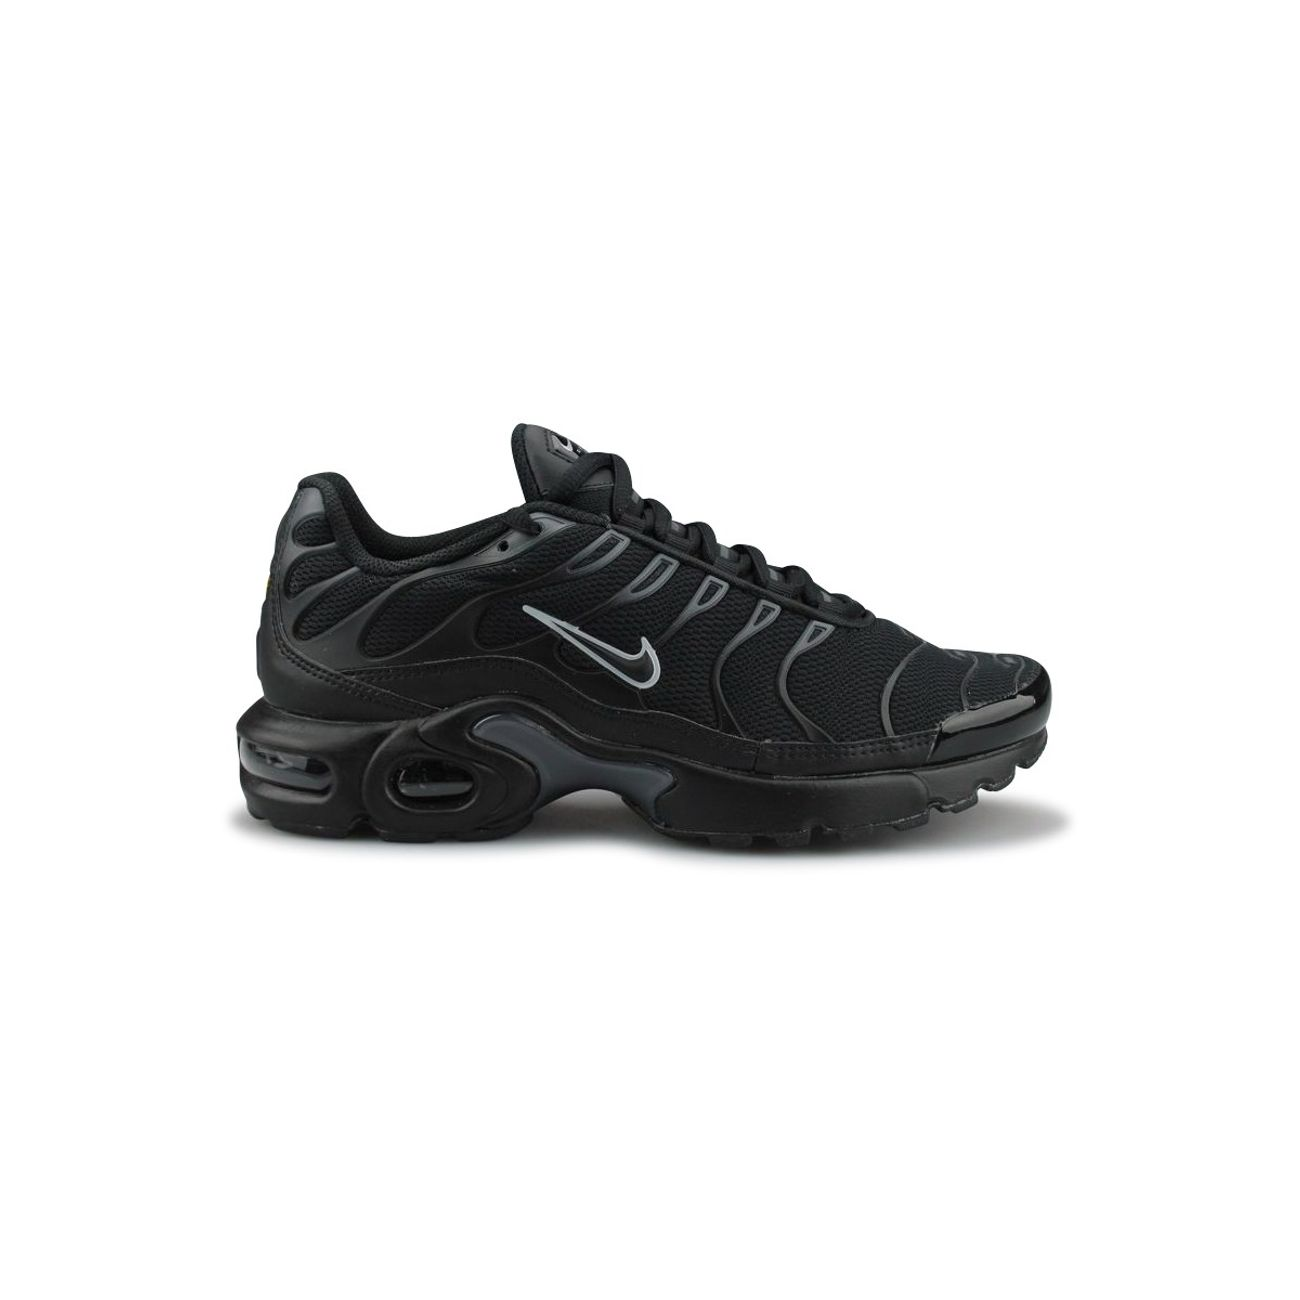 finest selection 659bf 3df18 Mode- Lifestyle garçon NIKE Nike Air Max Plus Tn Junior Noir ...